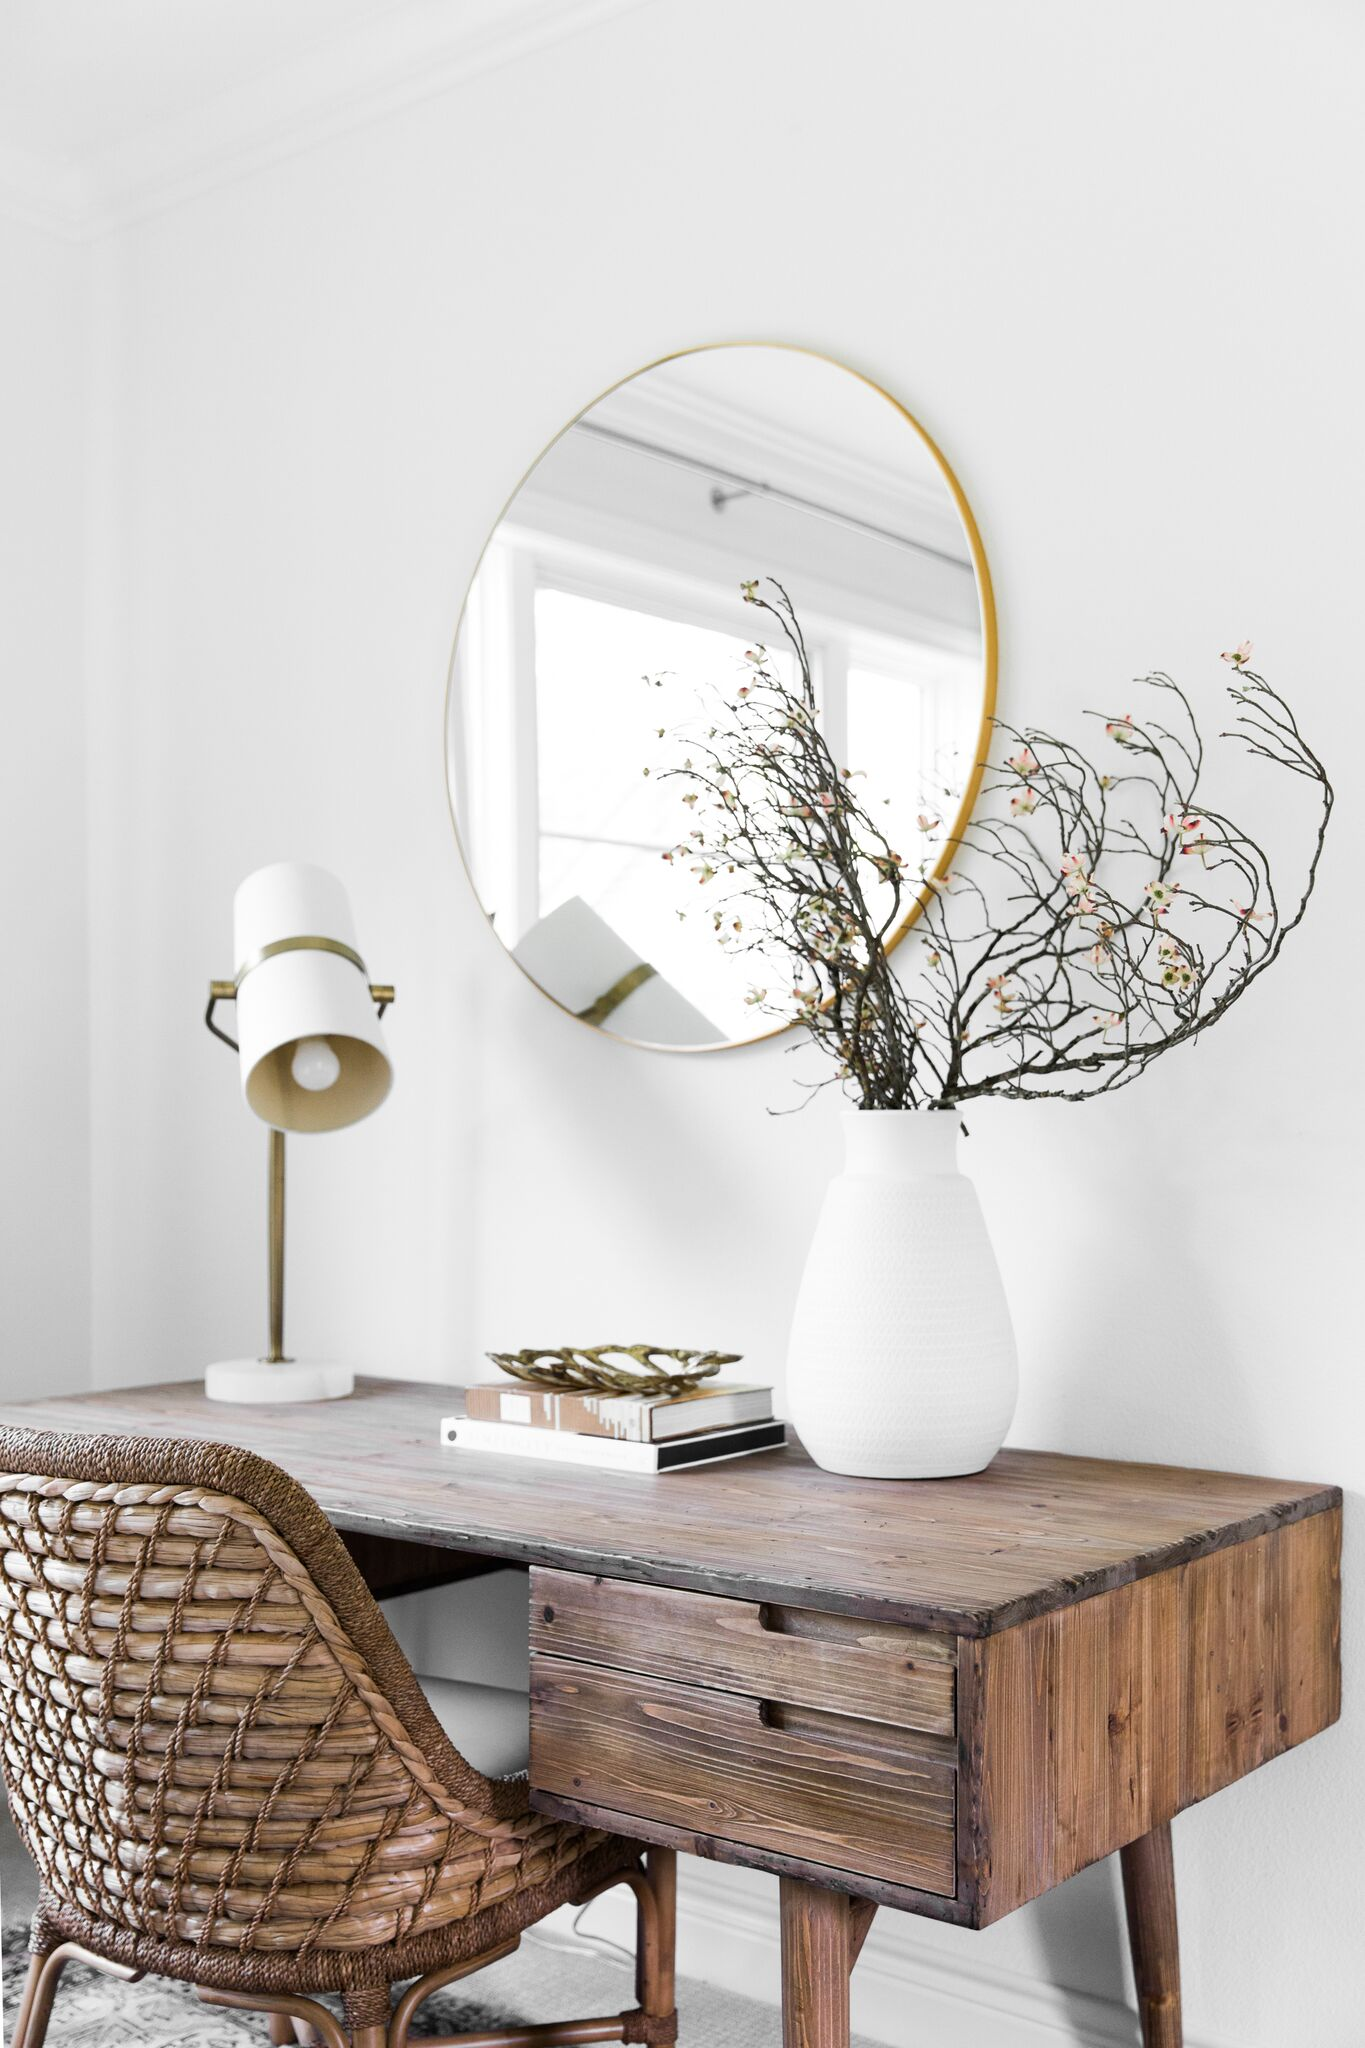 10Woven+Chair+and+Wood+Desk+in+Bohemian+Style+Desk+Area.jpg